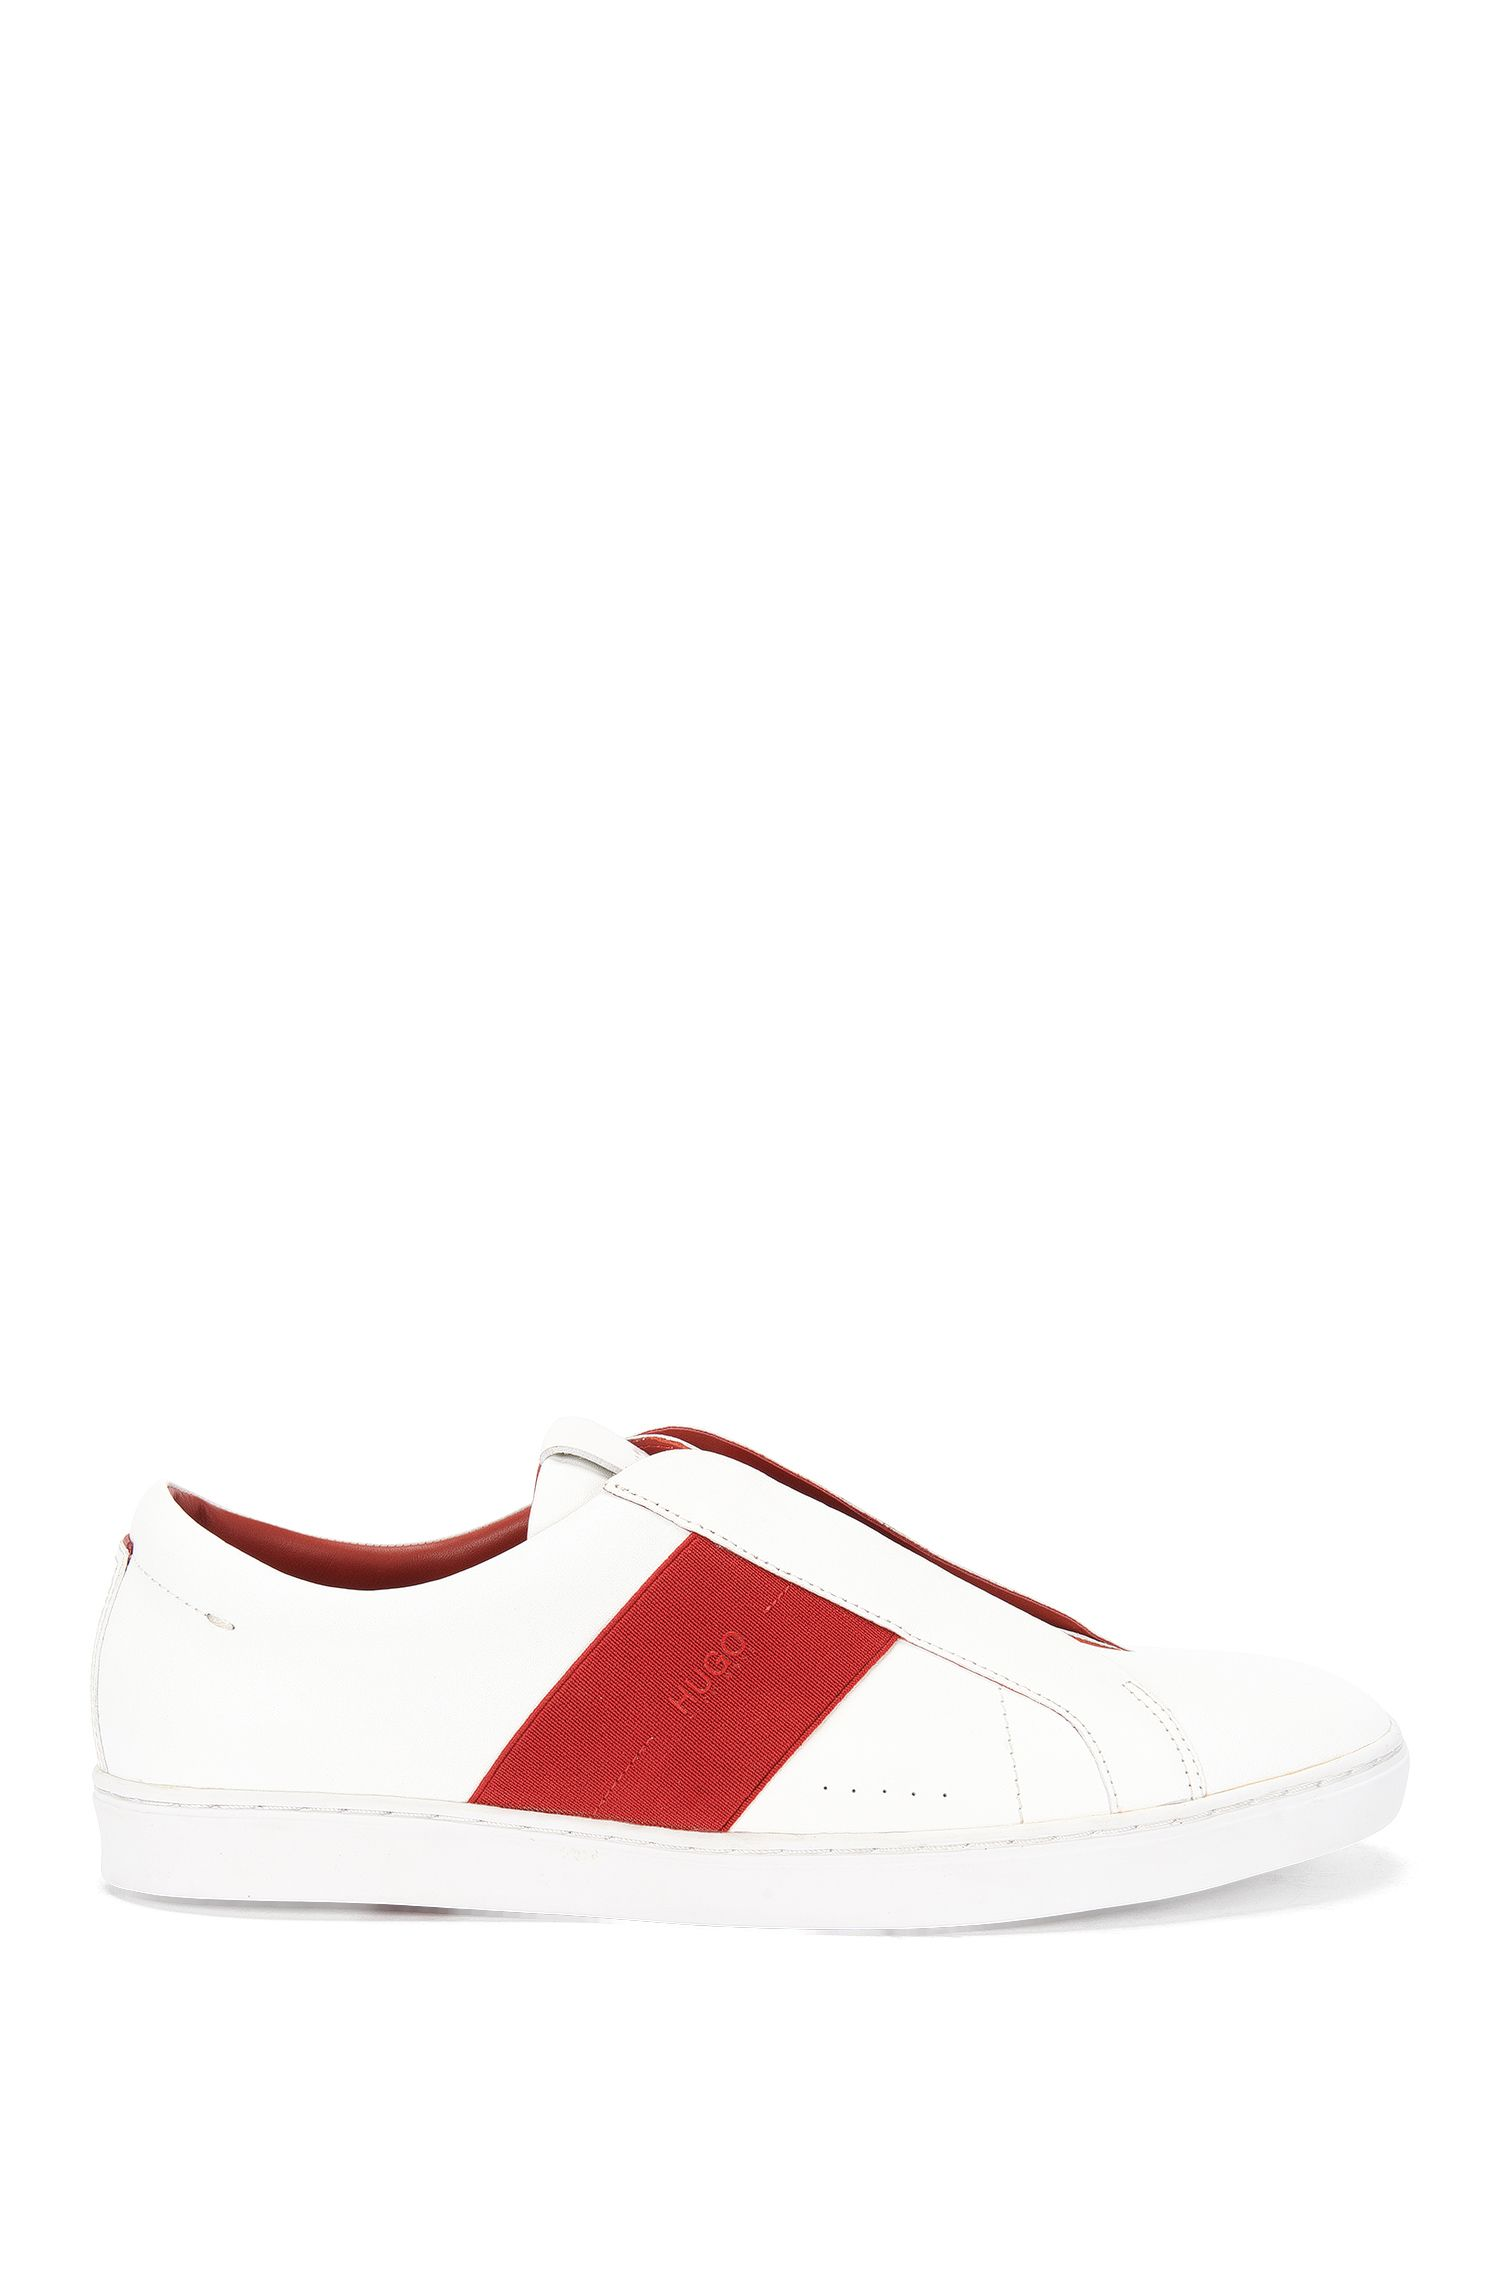 Slip-on trainers in nappa leather